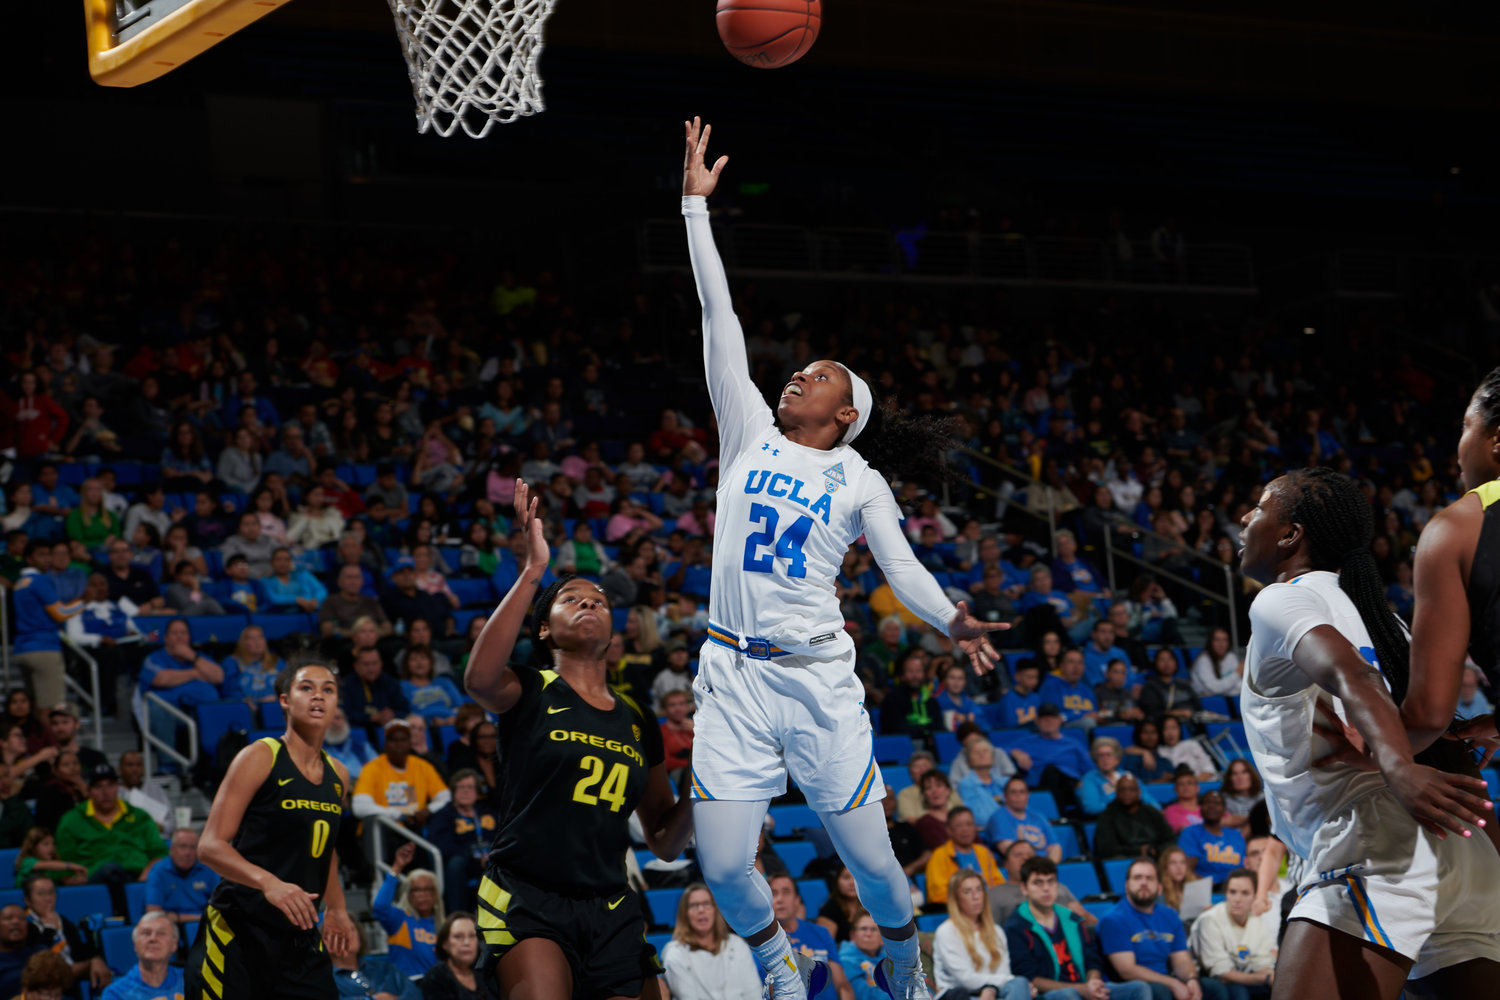 Japreece Dean has averaged 16.4 points per game with a 44.3 percent 3-point field goal percentage and 2.07 assist-to-turnover ratio and UCLA finished the regular season winning 10 of its final 12 games.